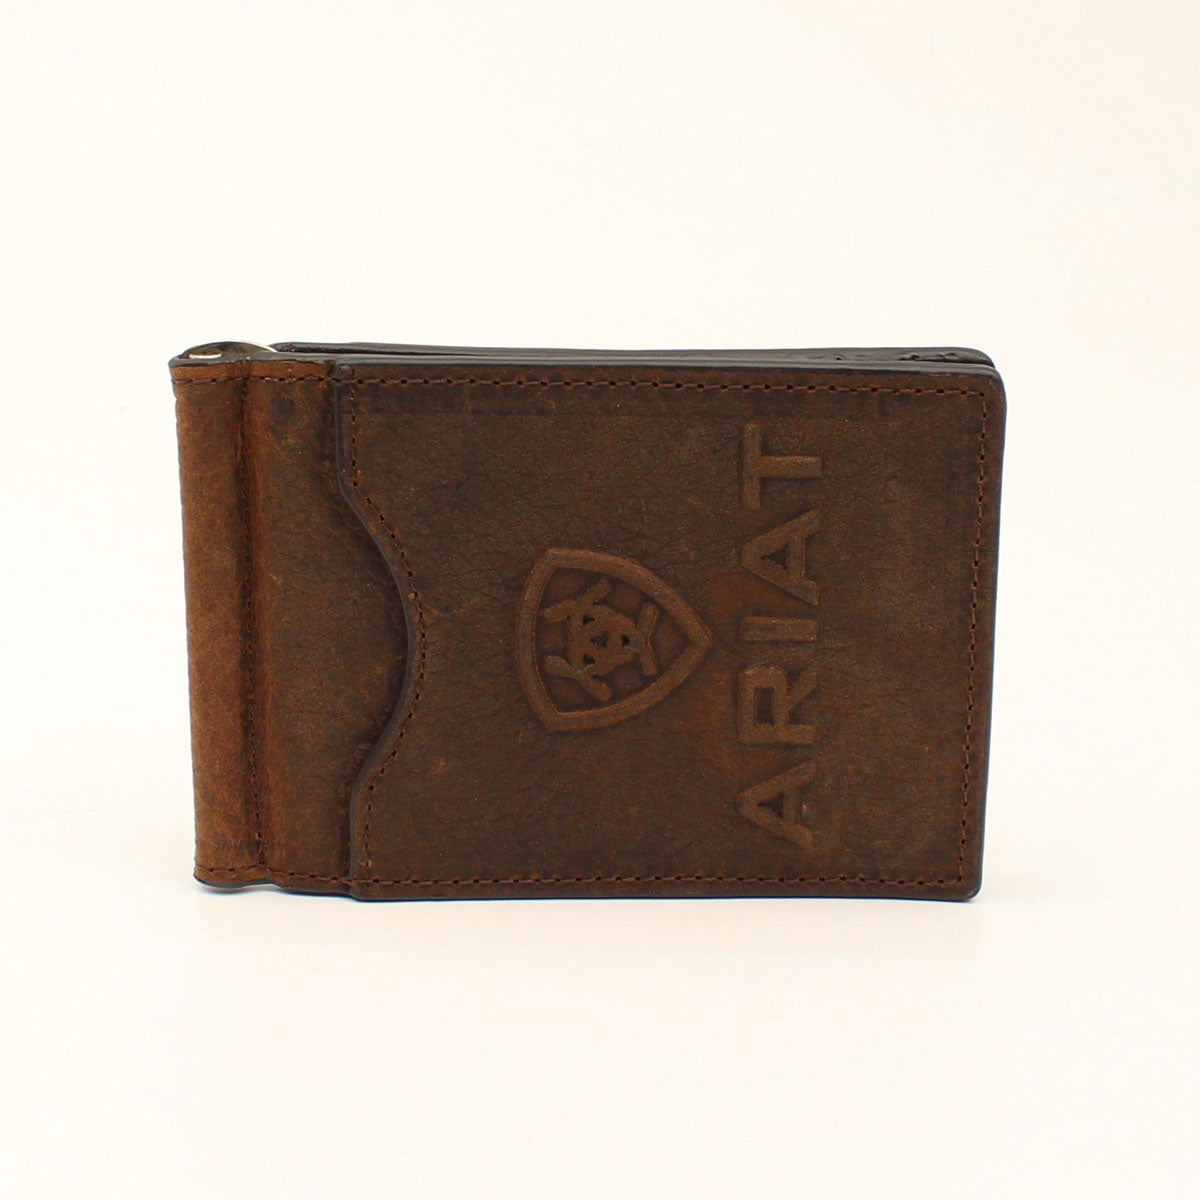 Ariat Bi-fold Money Clip Brown Leather Wallet